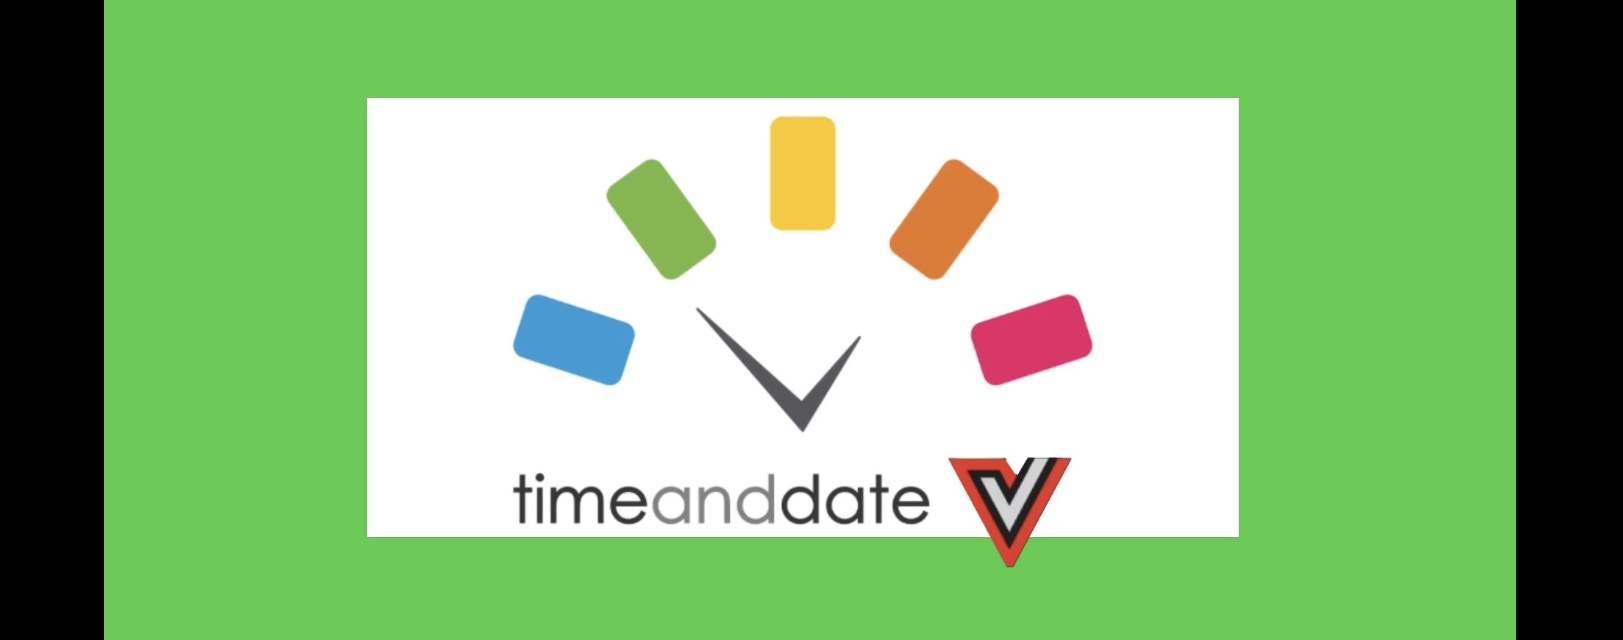 Real time technology to see time, date, weather, etc.